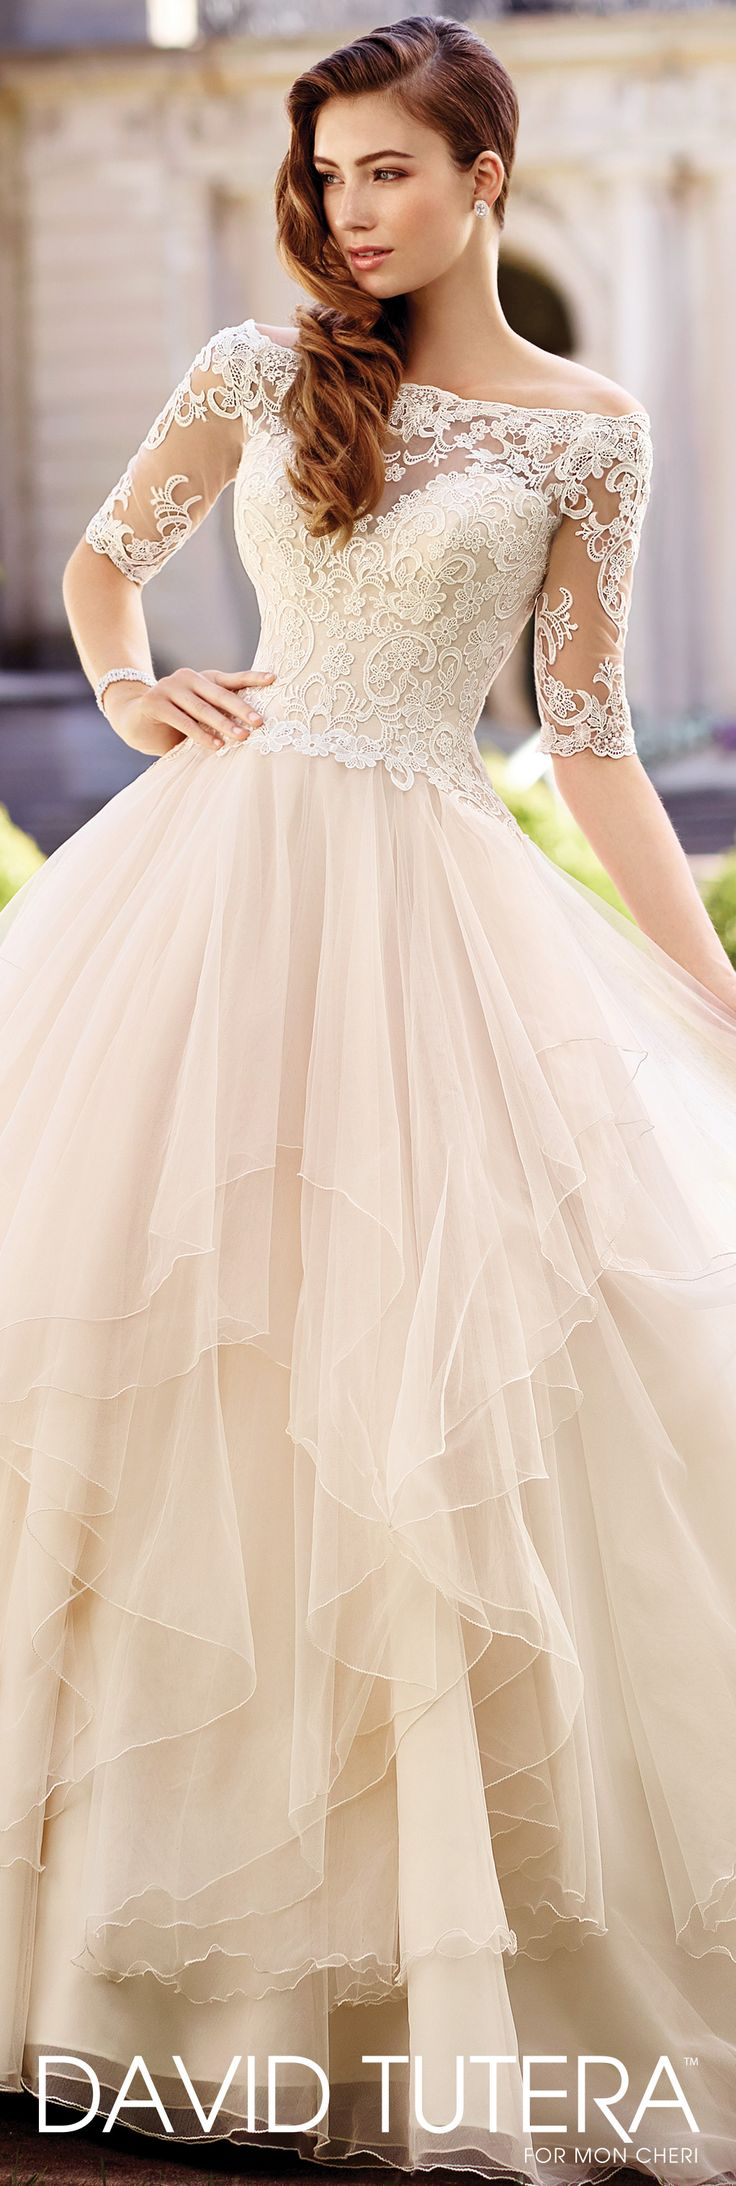 Size 20 a line wedding dress   best Wedding Dreams uc images on Pinterest  Weddings